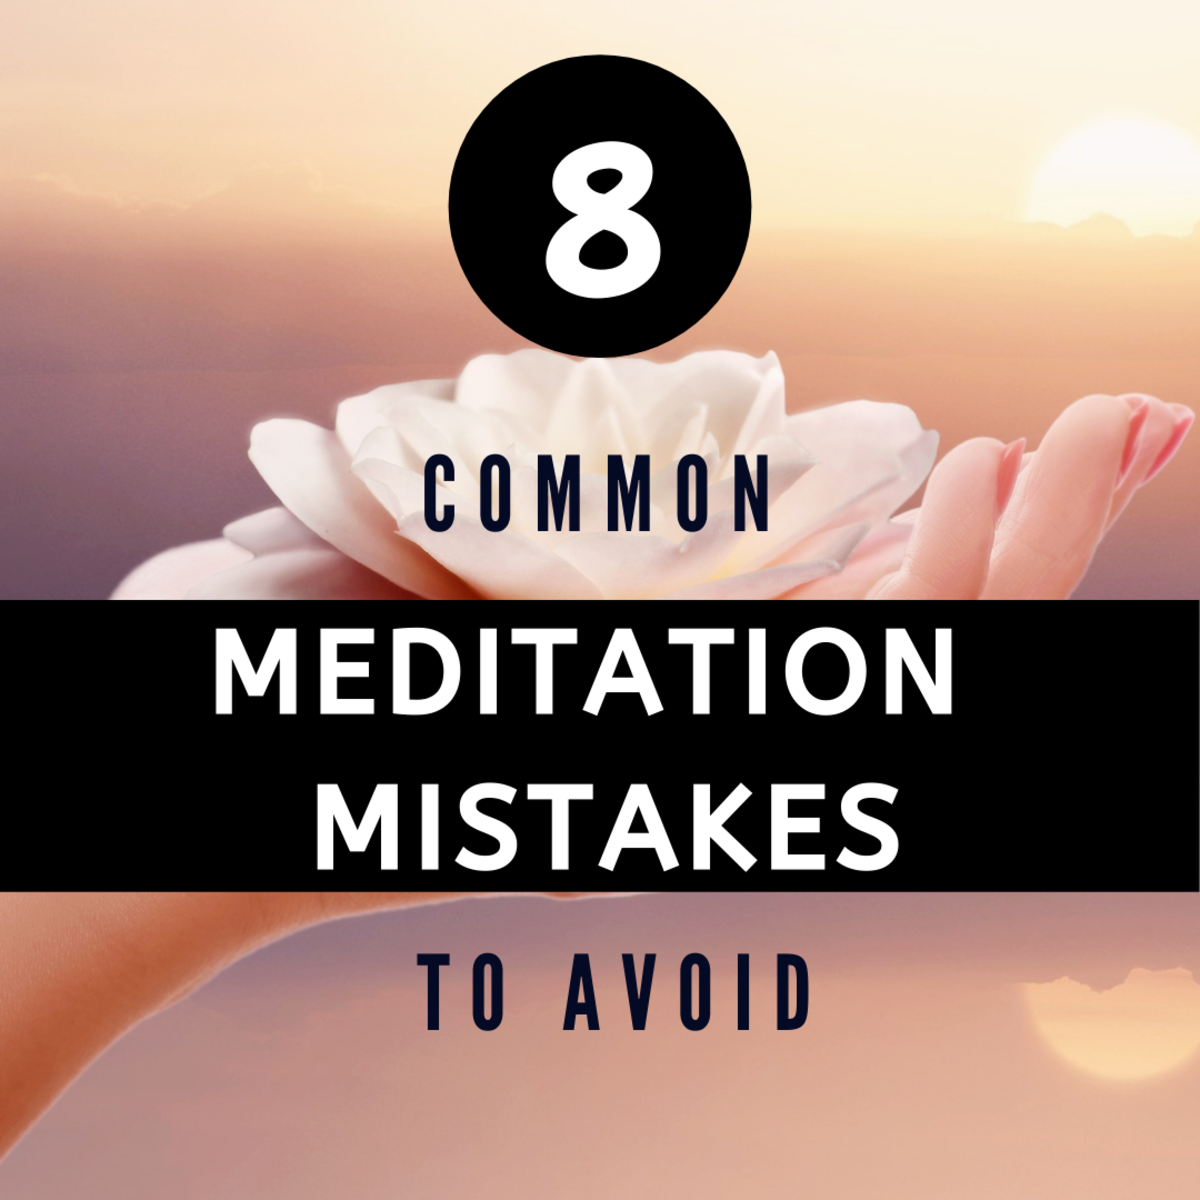 8 common meditation mistakes to avoid in your practice